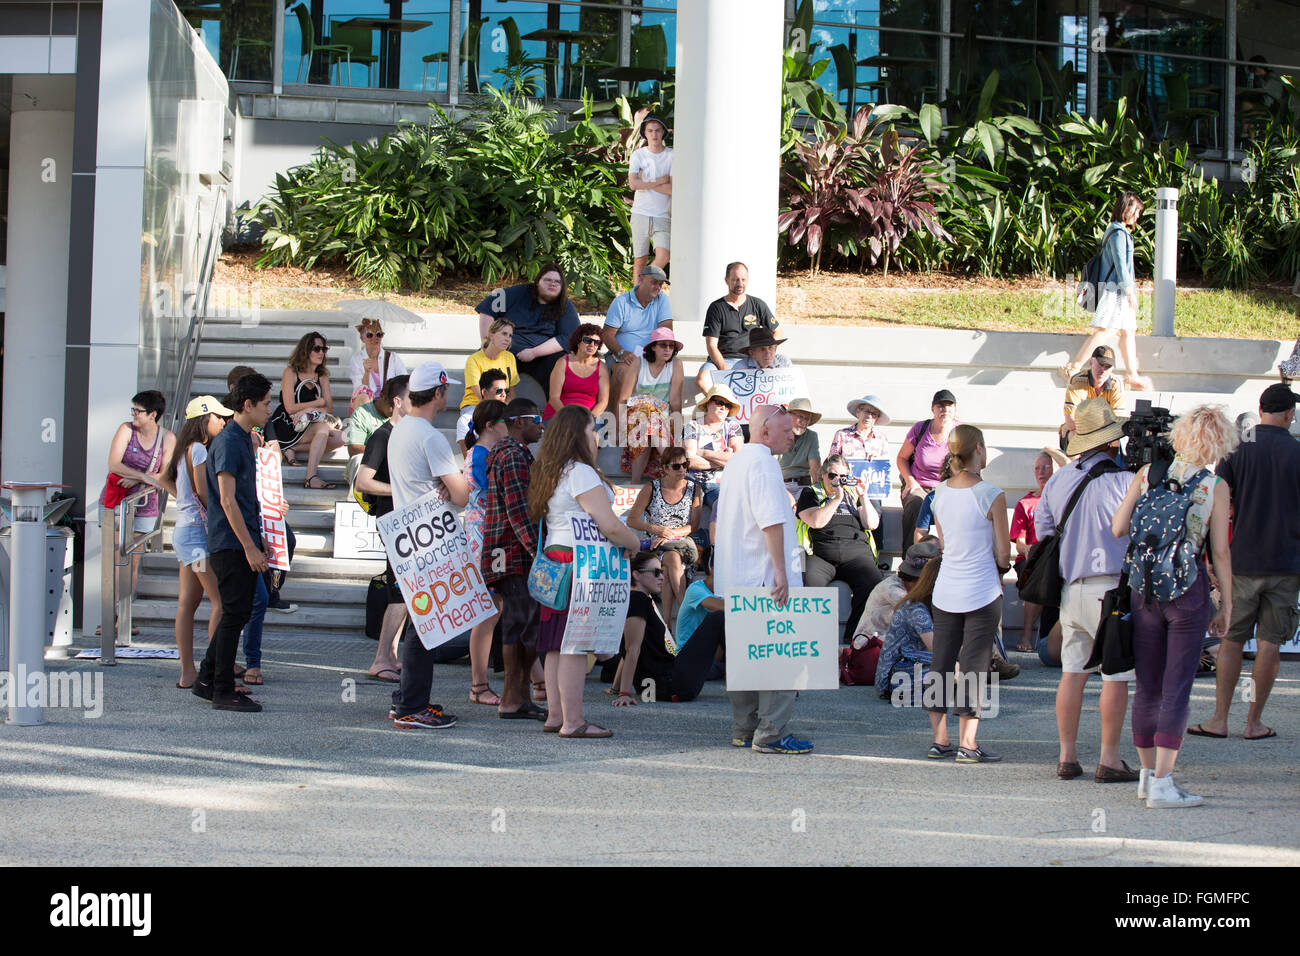 Brisbane, Australia. 21st February, 2016. Baby Asha let them stay rally organisers give victory speech to supporters - Stock Image